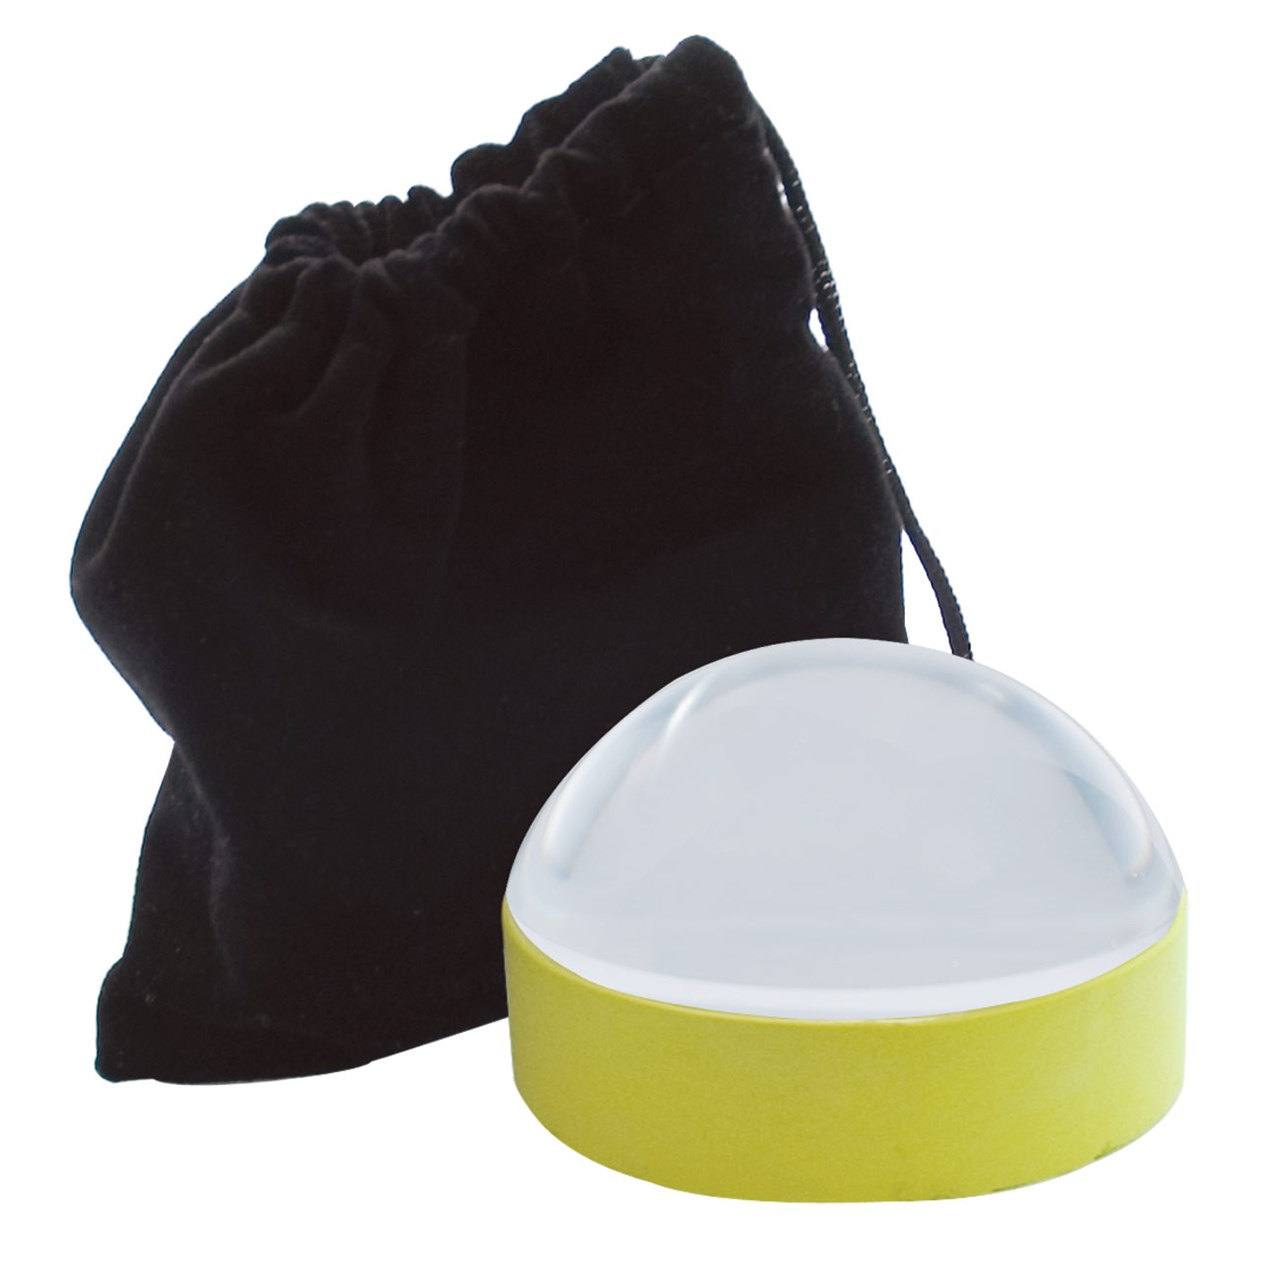 Reizen 65mm Dome Magnifier with Yellow Ring